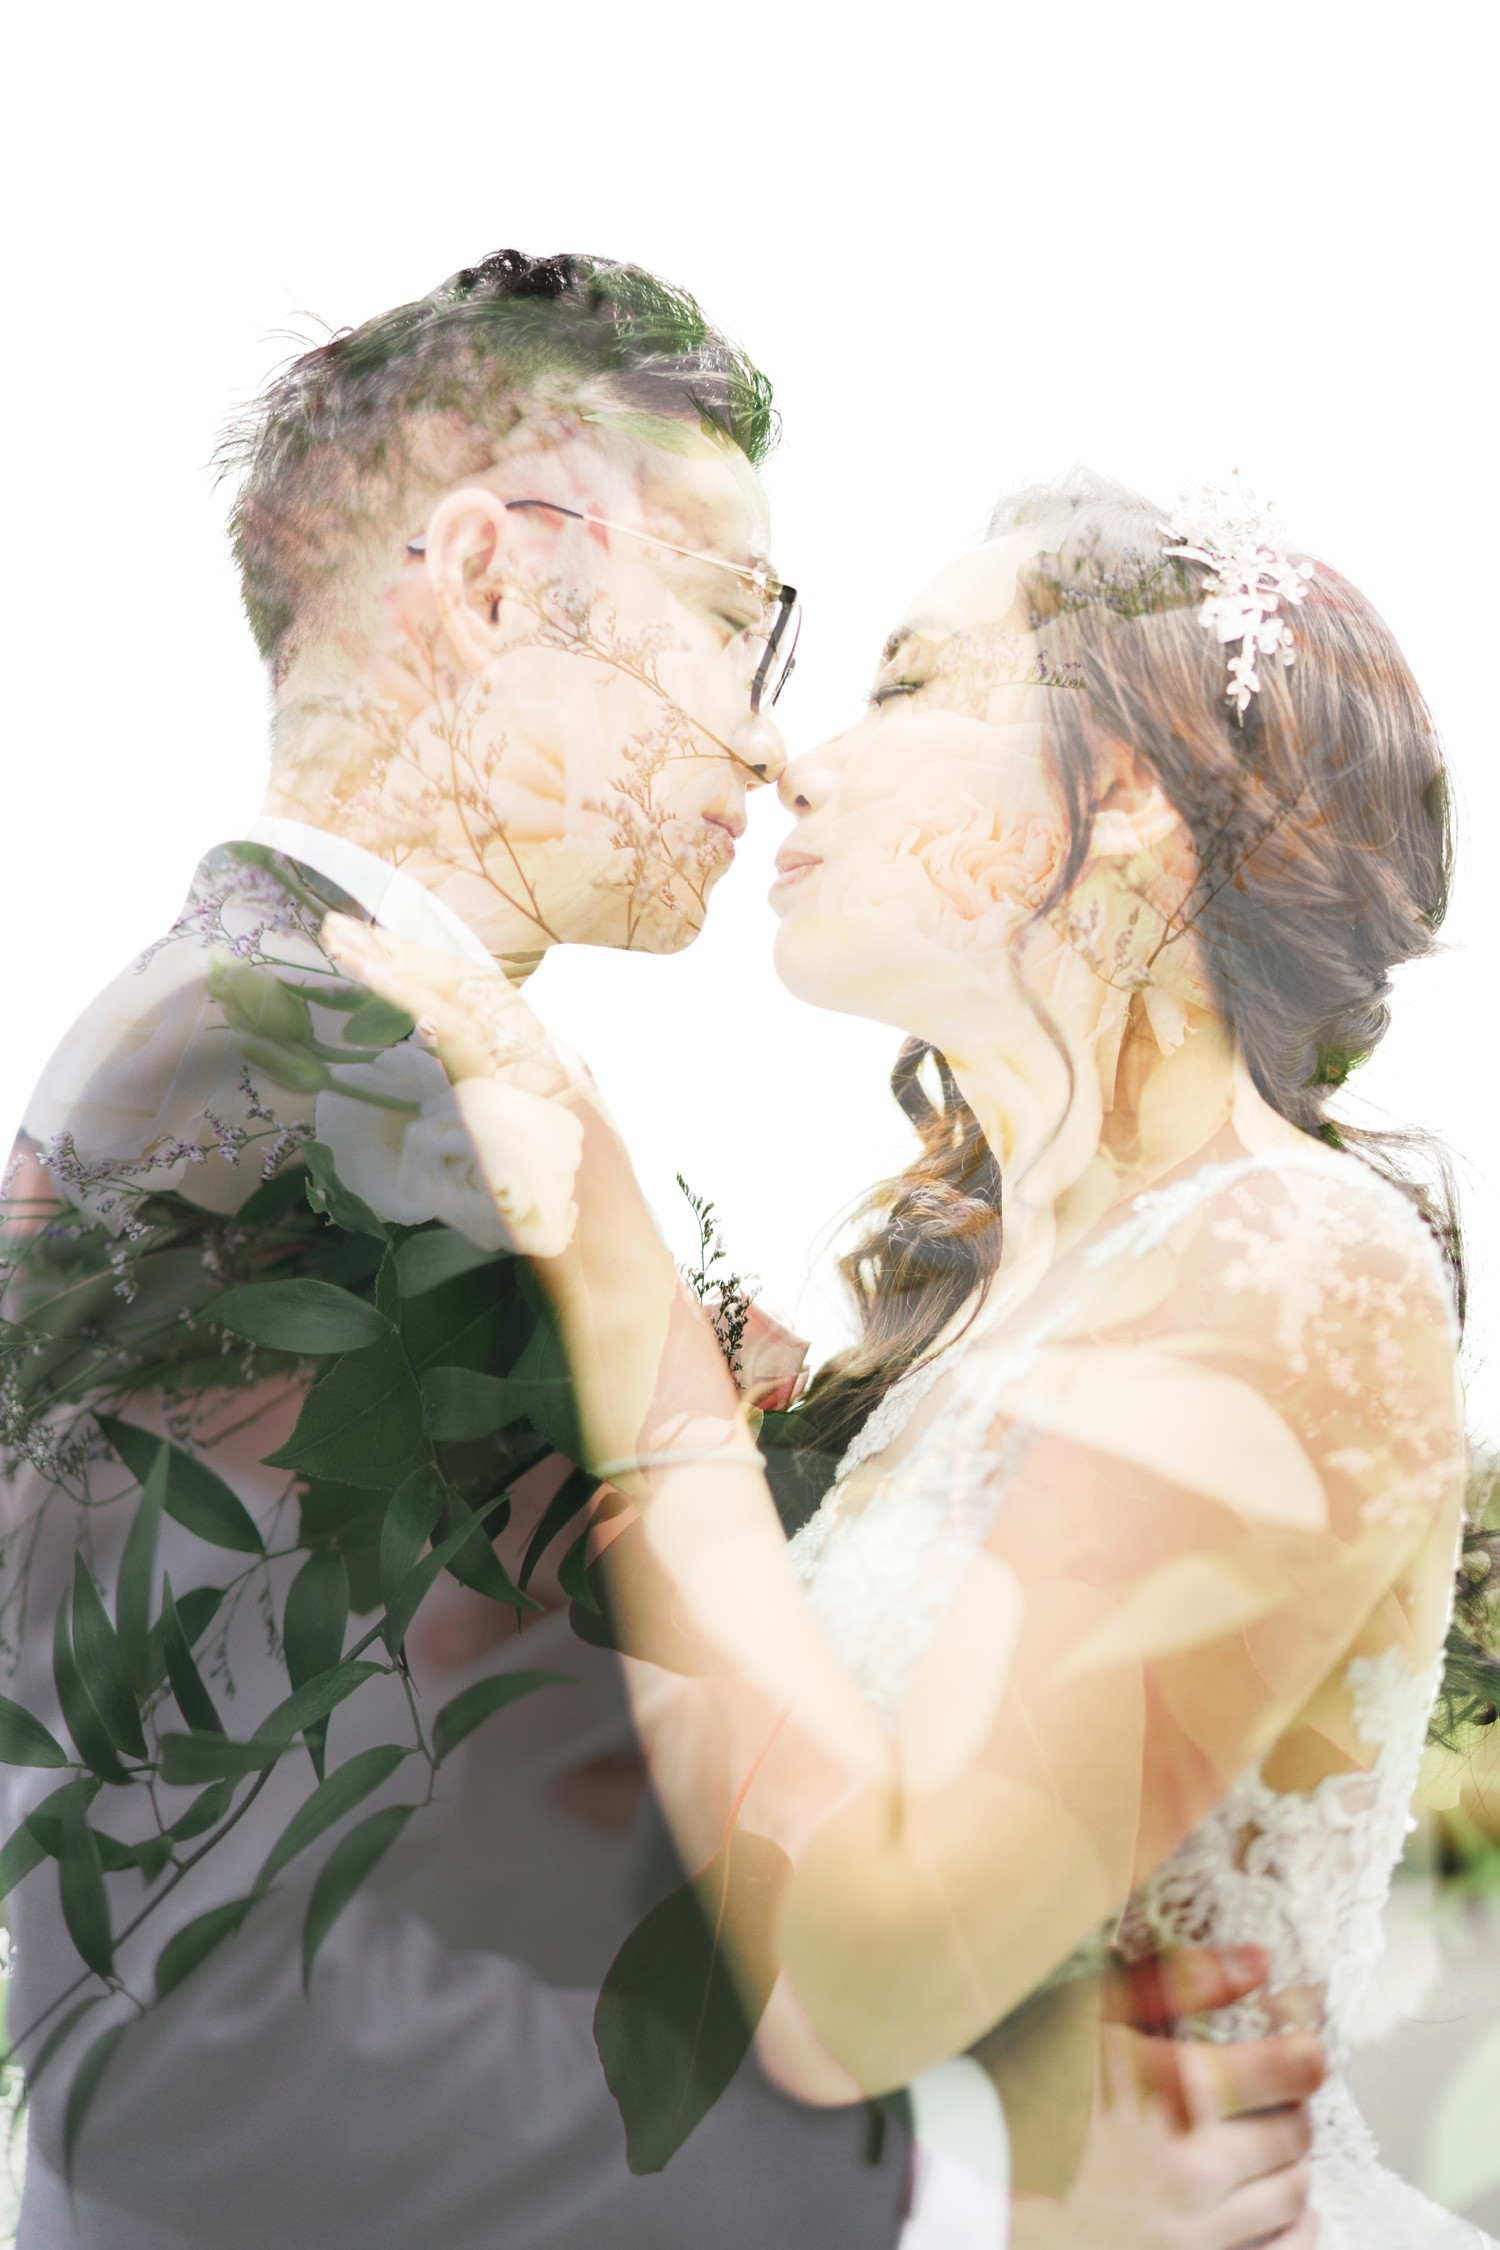 Double_Exposure_Bride_Groom_Eagles_Nest_Golf_Club_Wedding_Photos_Toronto_Wedding_Photographer-Rhythm_Photography